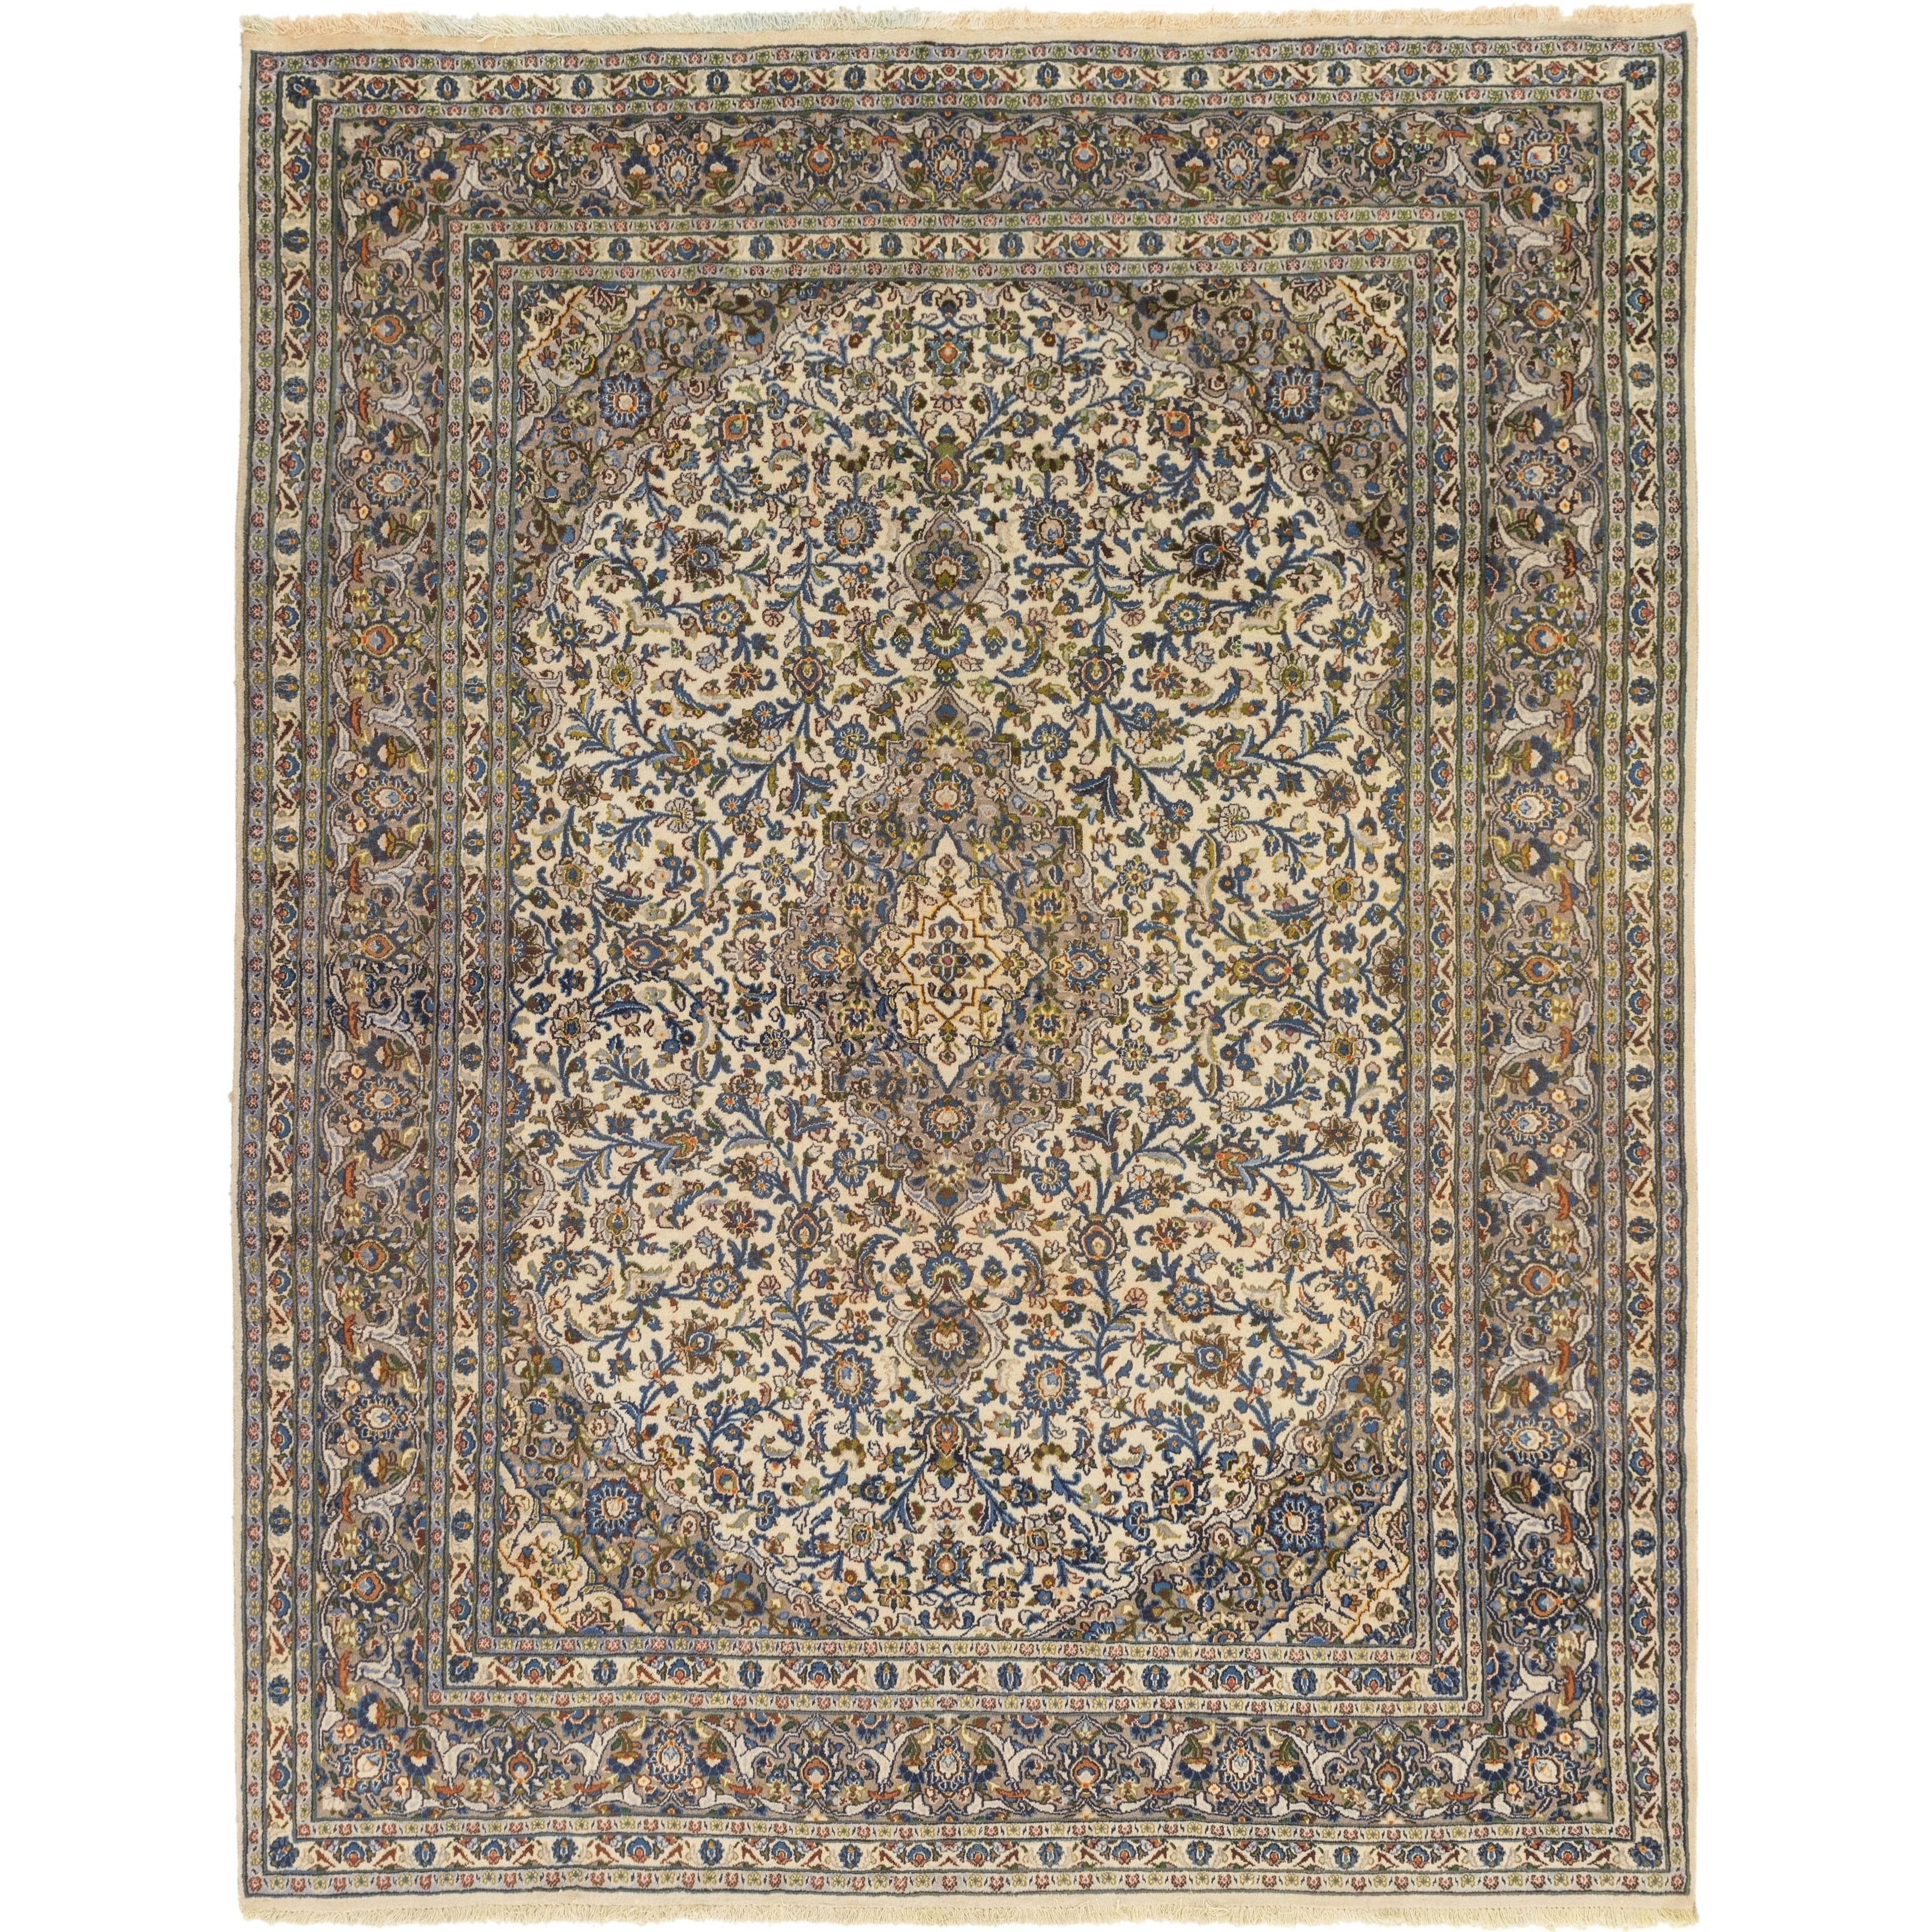 Hand Knotted Kashan Wool Area Rug - 9 7 x 12 5 (Ivory - 9 7 x 12 5)